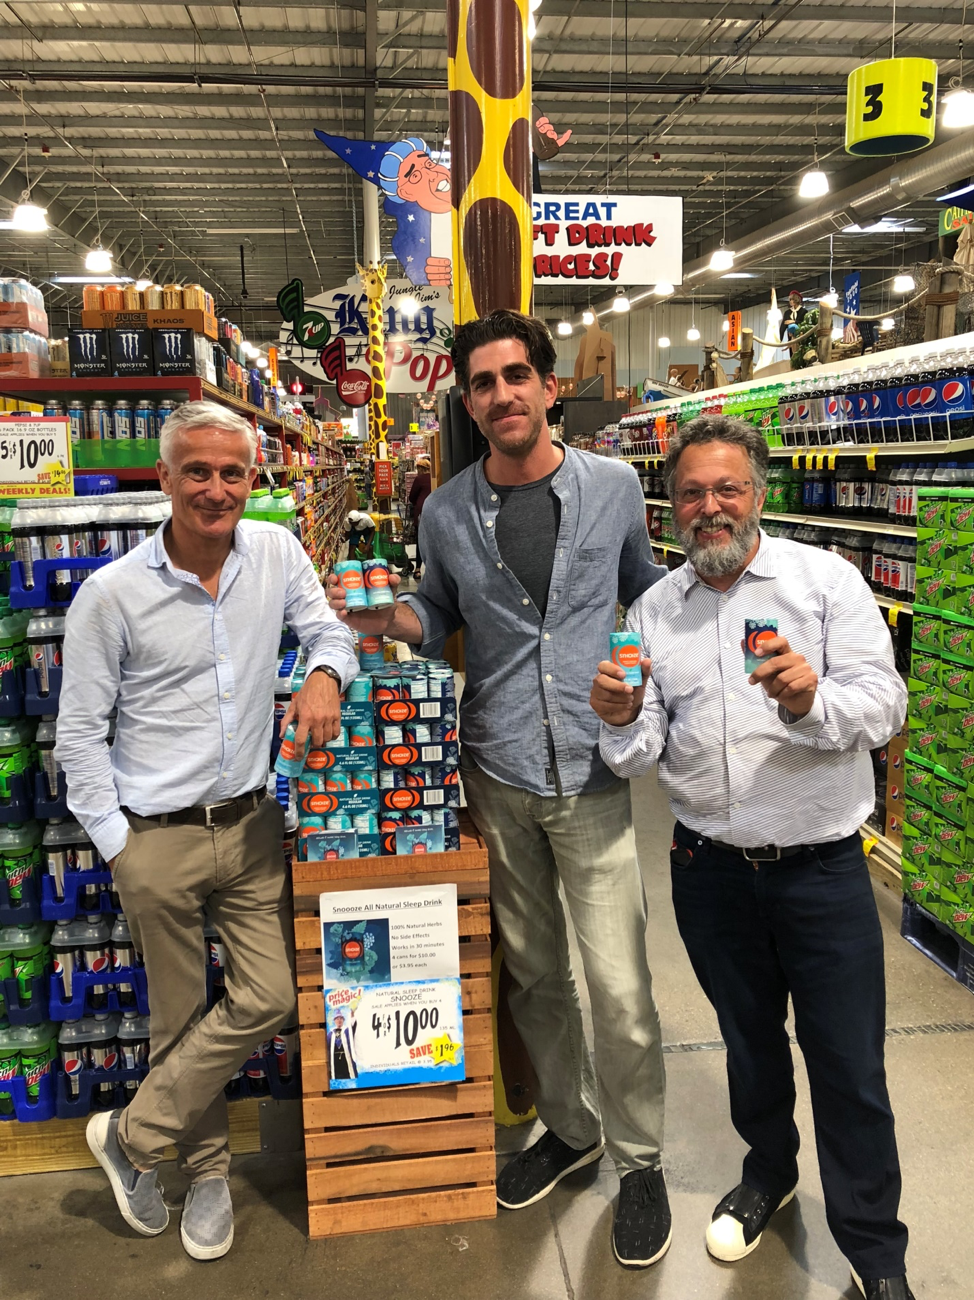 Photo:  Hans Vriens, founder of Snoooze, Chris Bonamino of Jungle Jim's and Rick Ross, CEO of Galerie who is partnering with Vriens to launch Snoooze in Cincinnati as a test market for the U.S. roll out.